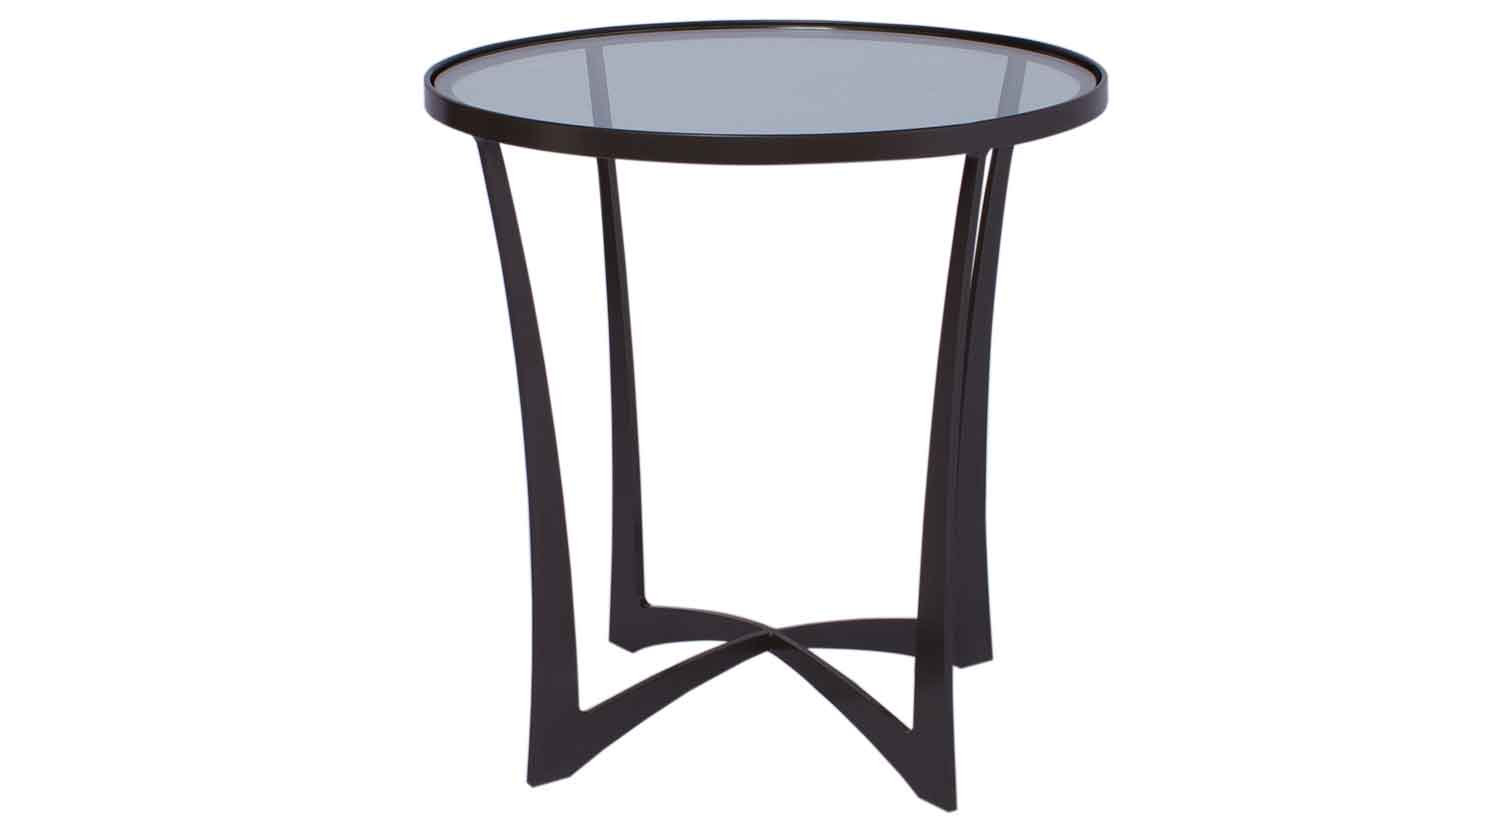 circle furniture lotus end table glass accent tables vintage home decor round living room coffee and distressed blue cotton tablecloth hallway ideas black marble chairs small sofa